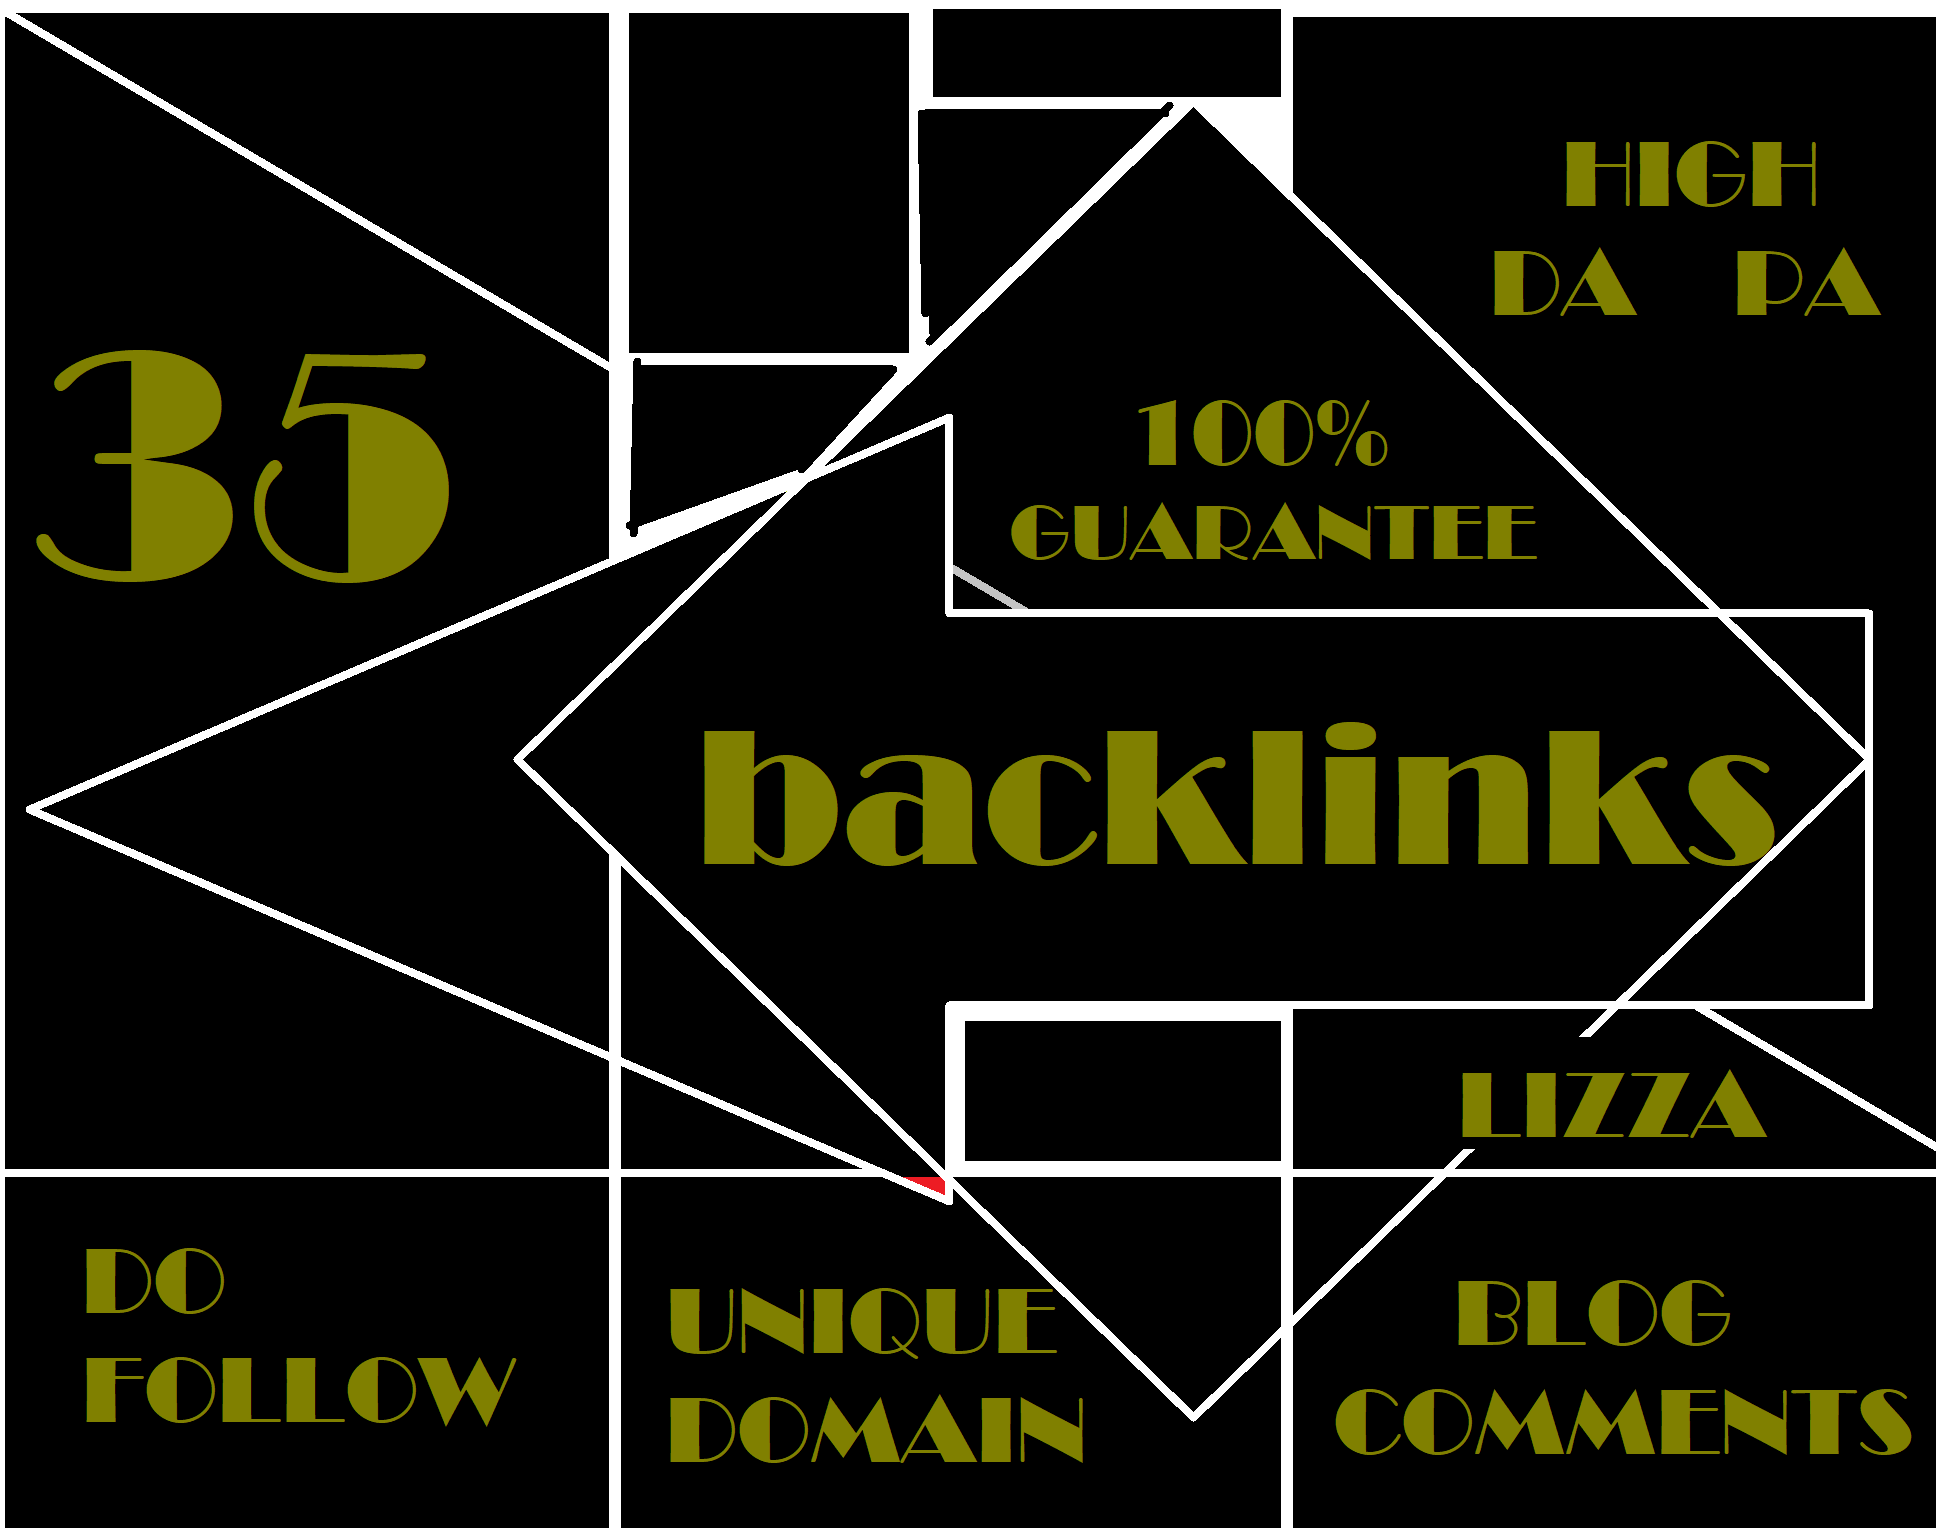 provide 35 backlinks unique domain High DA PA Do follow blog comments